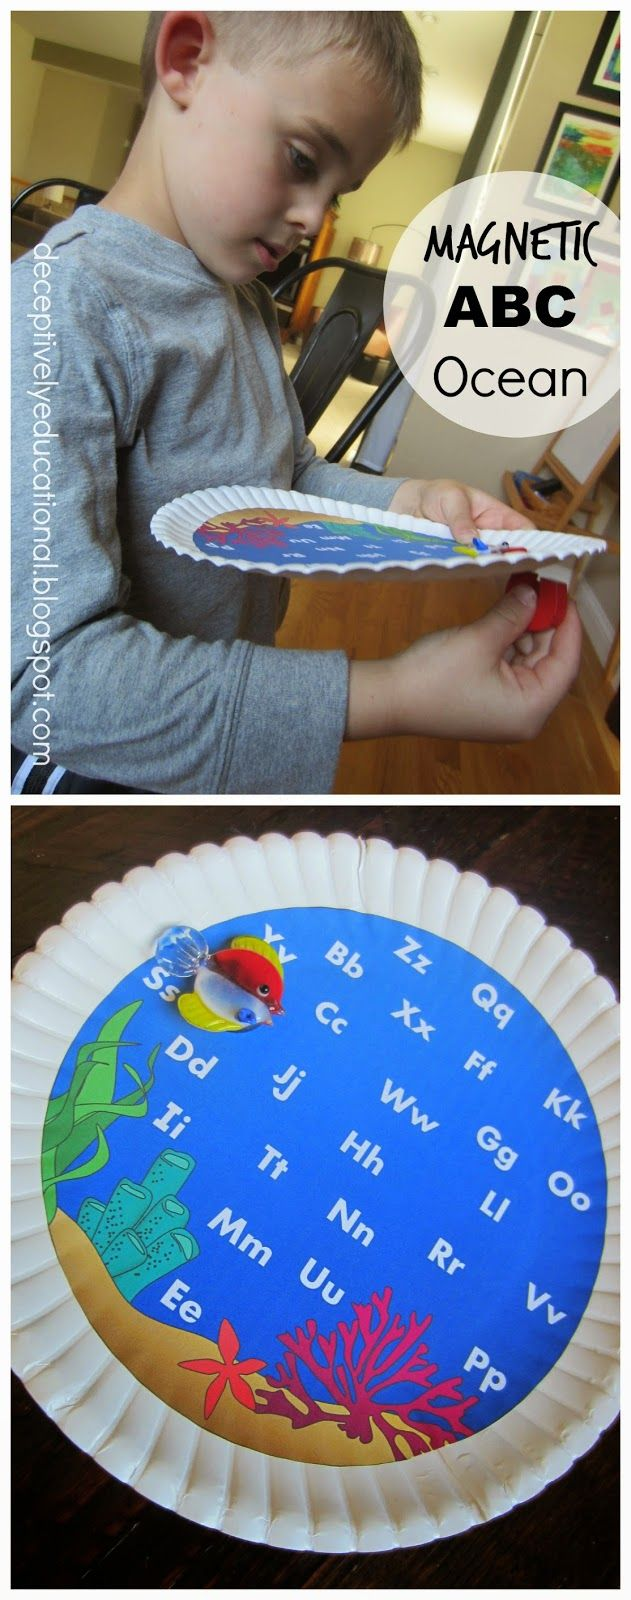 Relentlessly Fun, Deceptively Educational: Magnetic ABC Ocean: